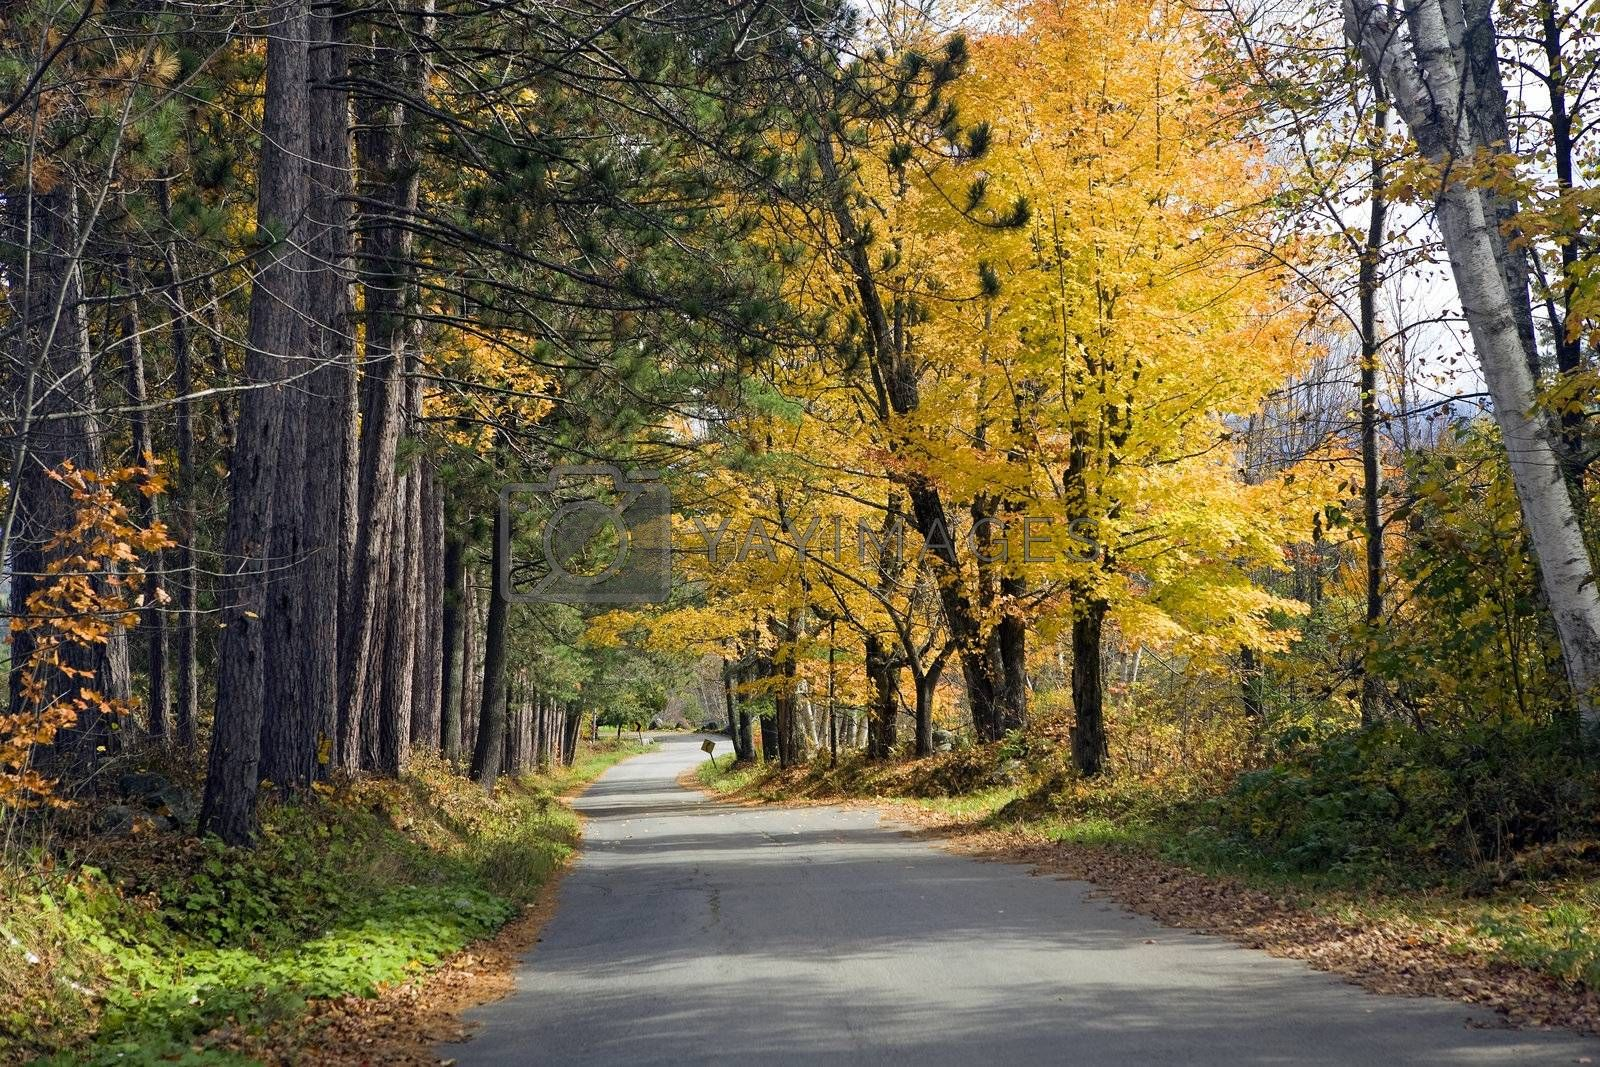 Yellow Maple and green pine trees line a country road with vibrantly colored Autumn leaves.